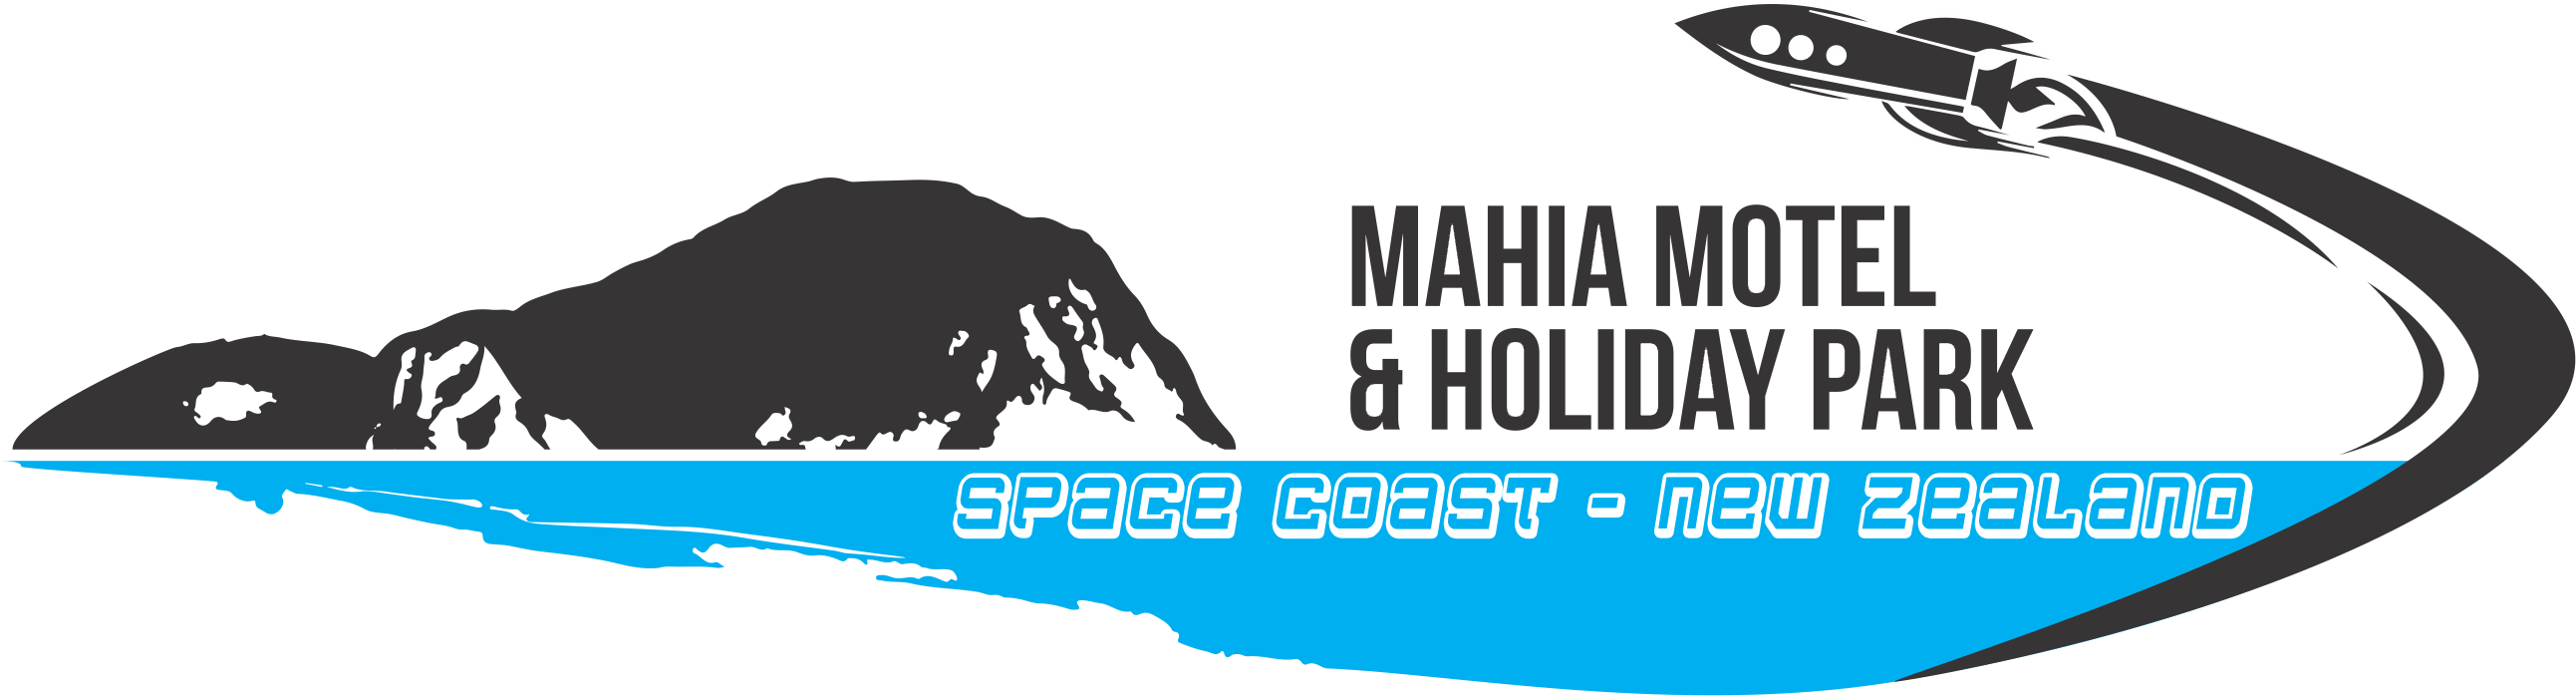 Mahia Motel and Holiday Park